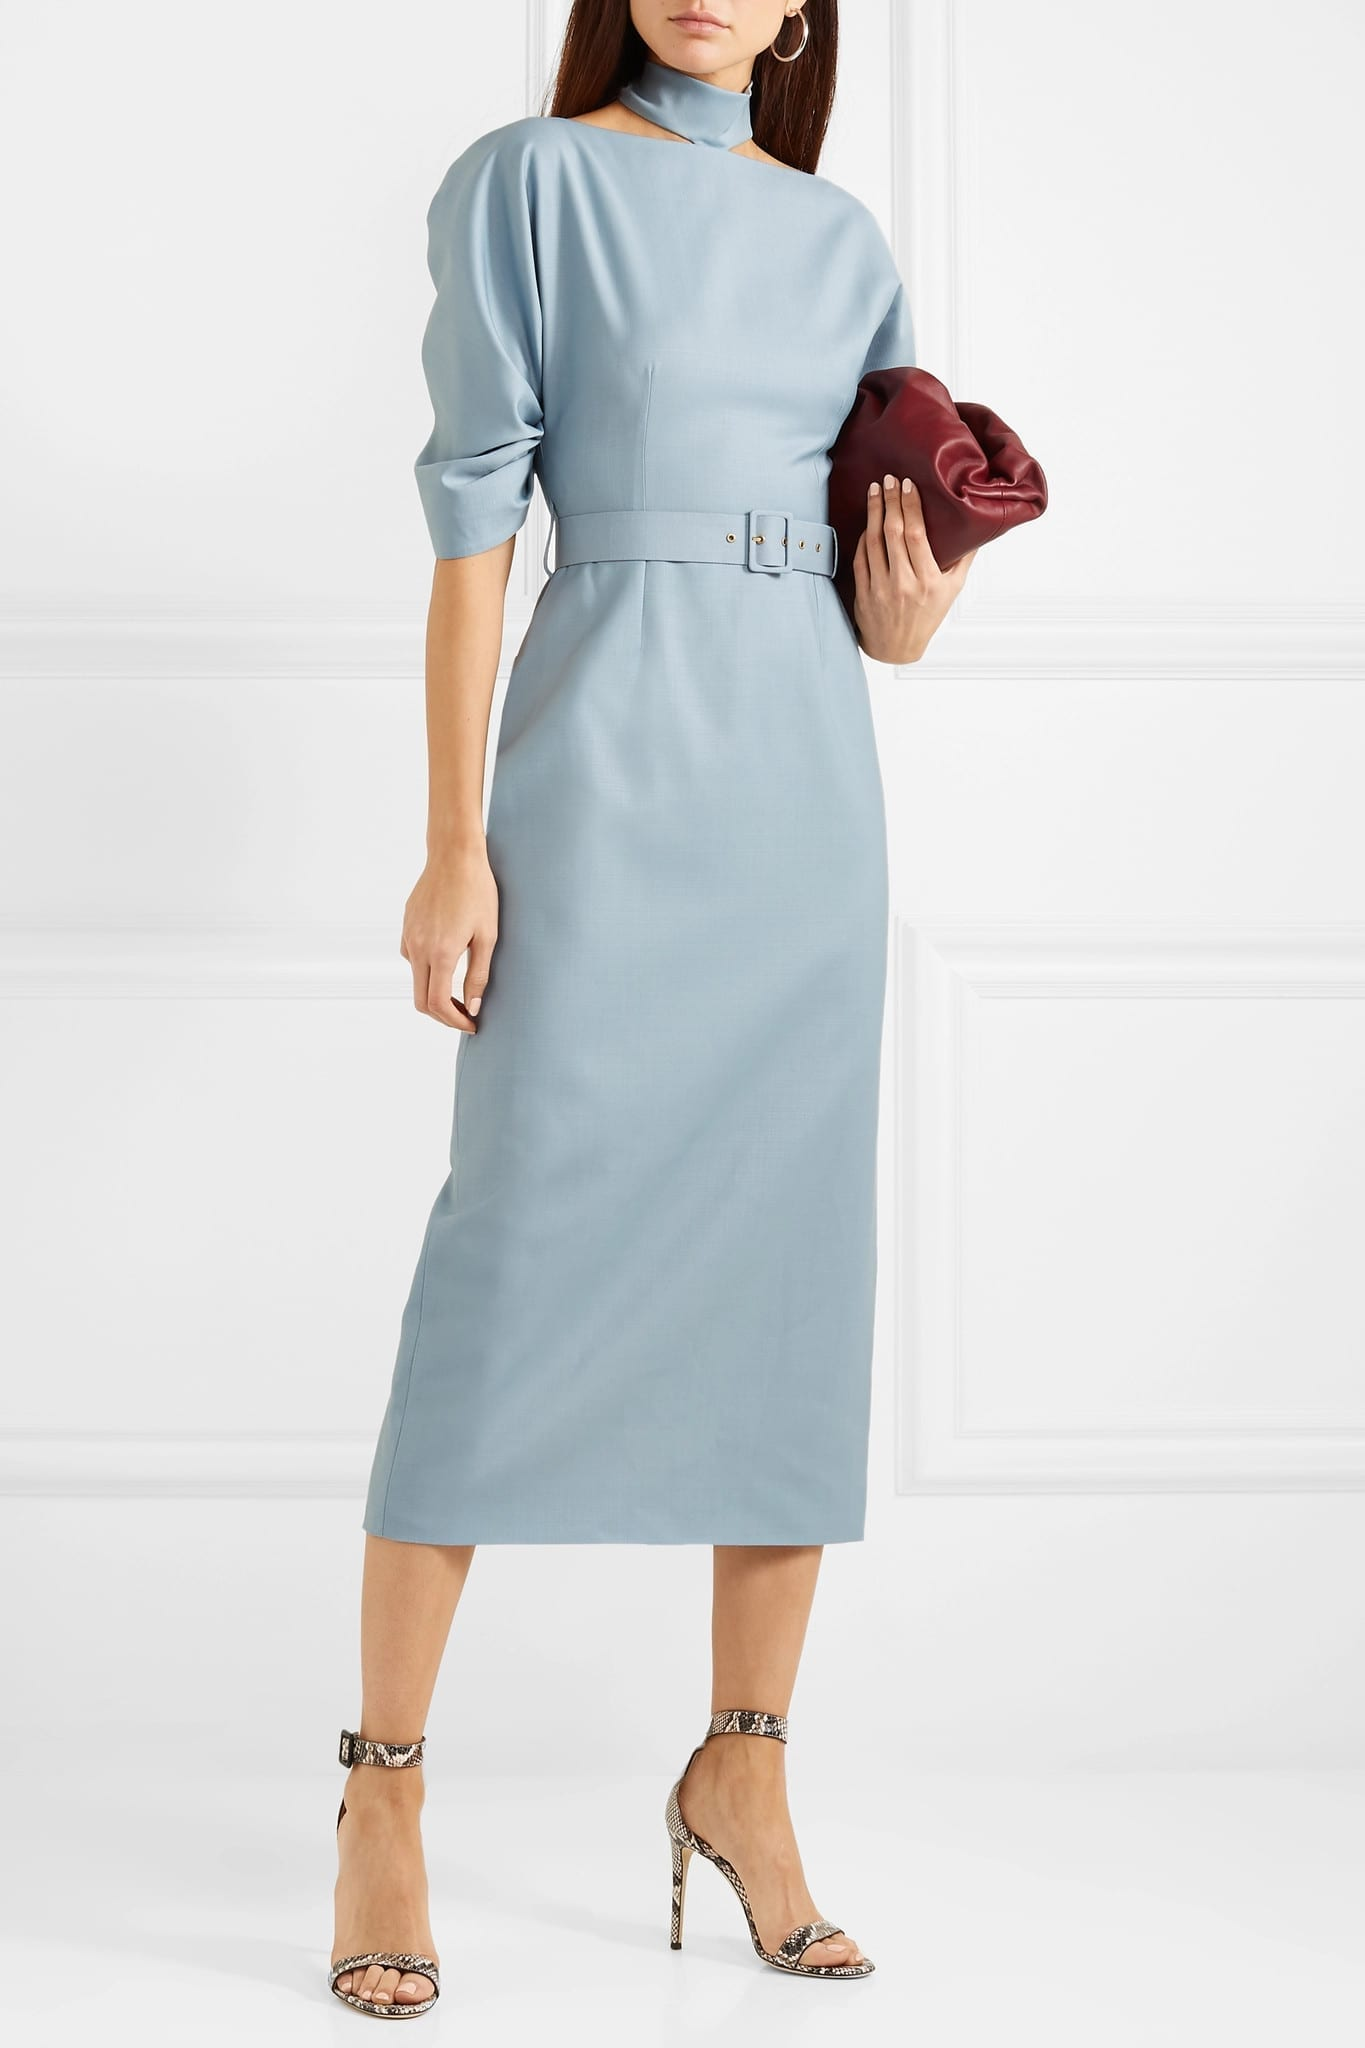 EMILIA WICKSTEAD The Wool Mark Company Belted Wool-crepe Midi Blue Dress